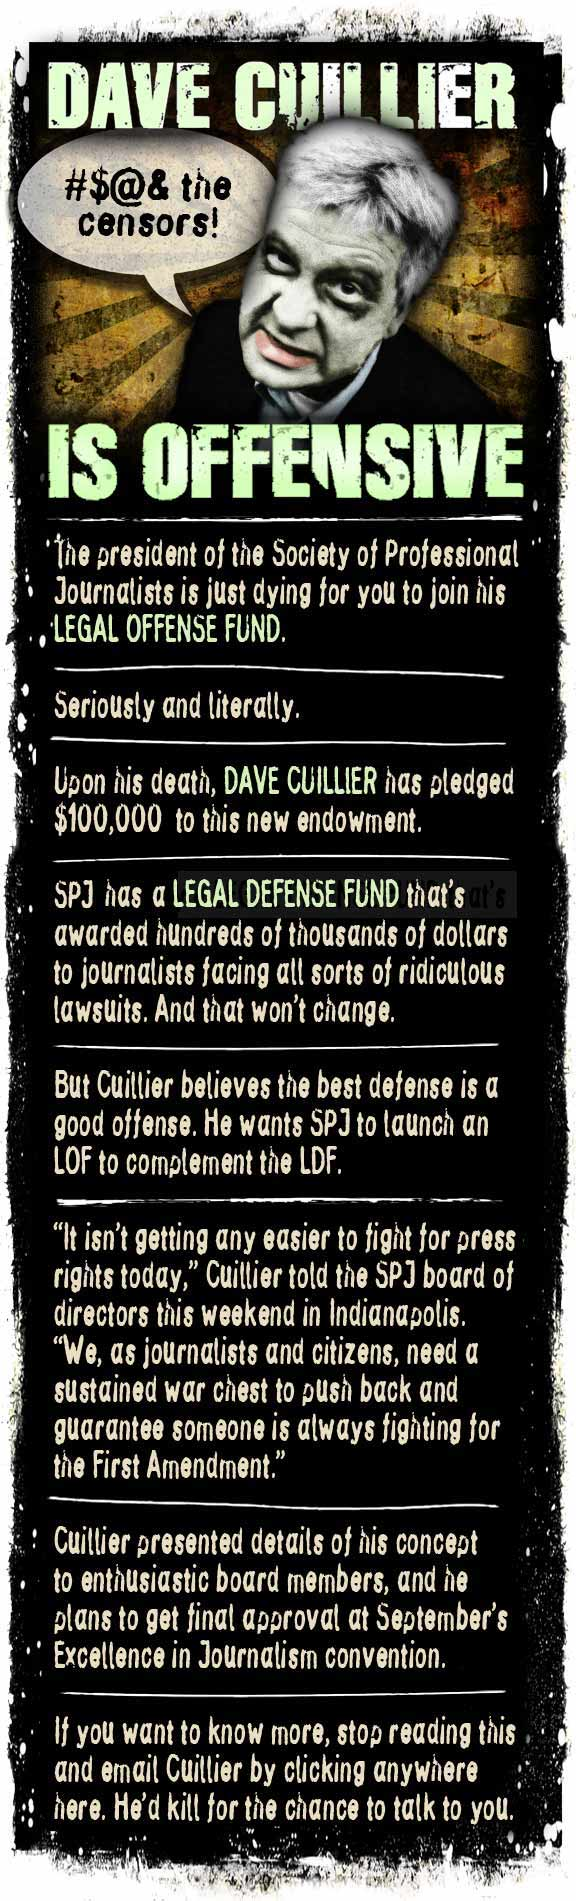 dave cuillier legal offense fund